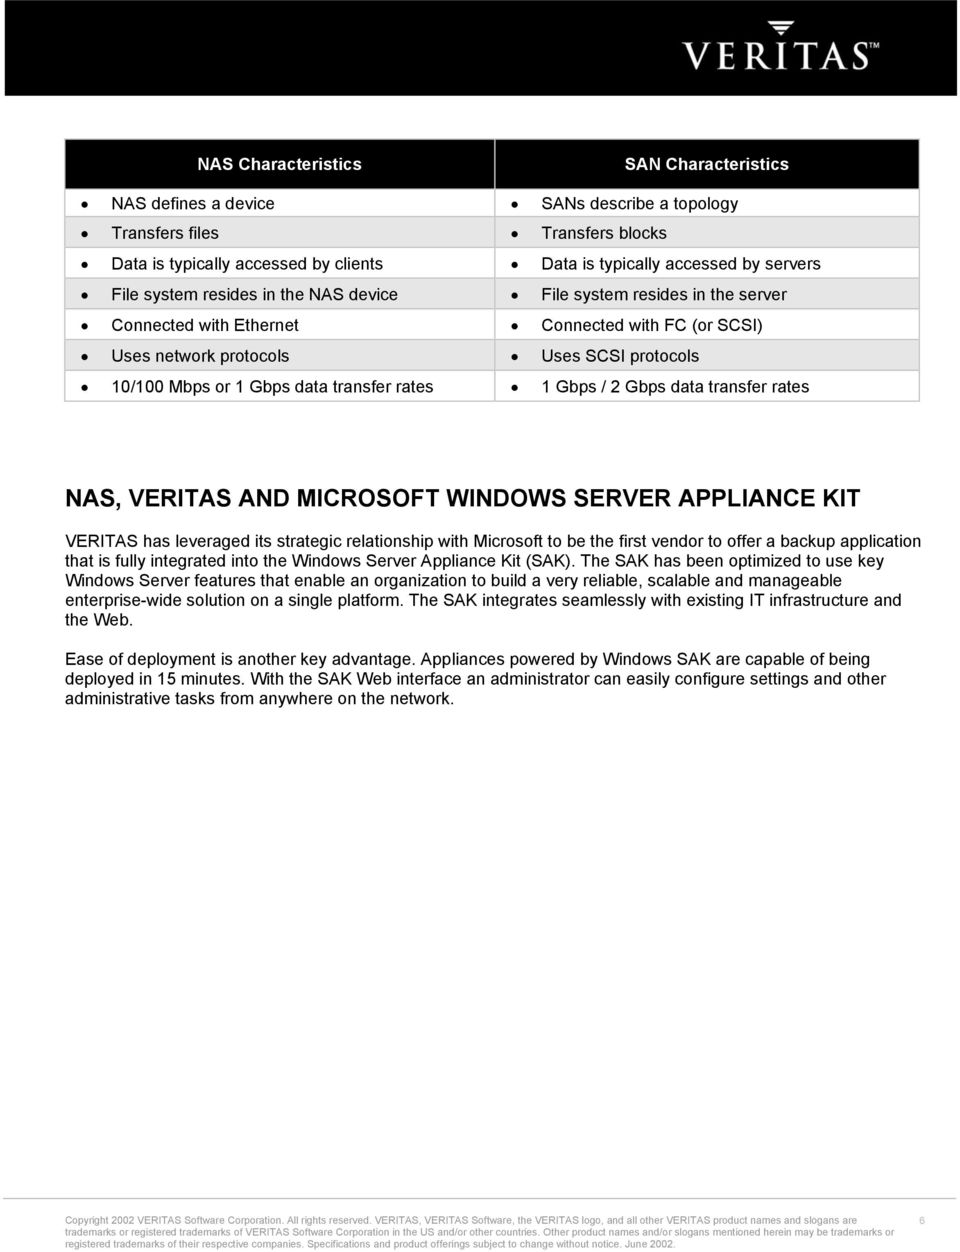 rates 1 Gbps / 2 Gbps data transfer rates NAS, VERITAS AND MICROSOFT WINDOWS SERVER APPLIANCE KIT VERITAS has leveraged its strategic relationship with Microsoft to be the first vendor to offer a